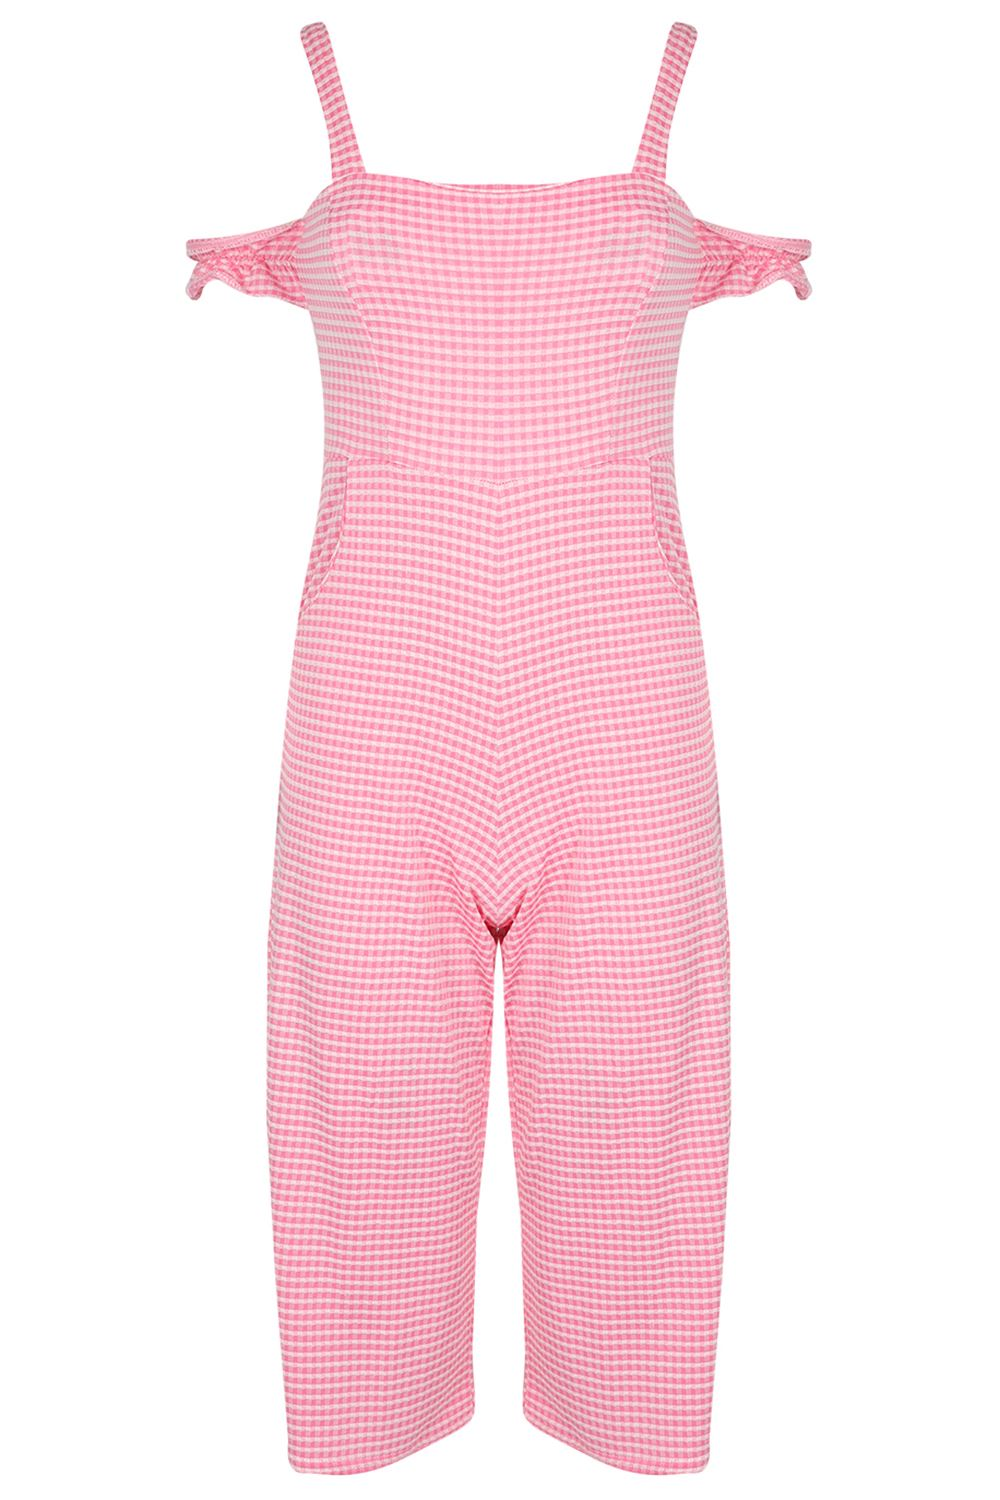 Womens-Ladies-Off-the-Shoulder-Bardot-Culotte-Gingham-Check-All-in-One-Jumpsuit